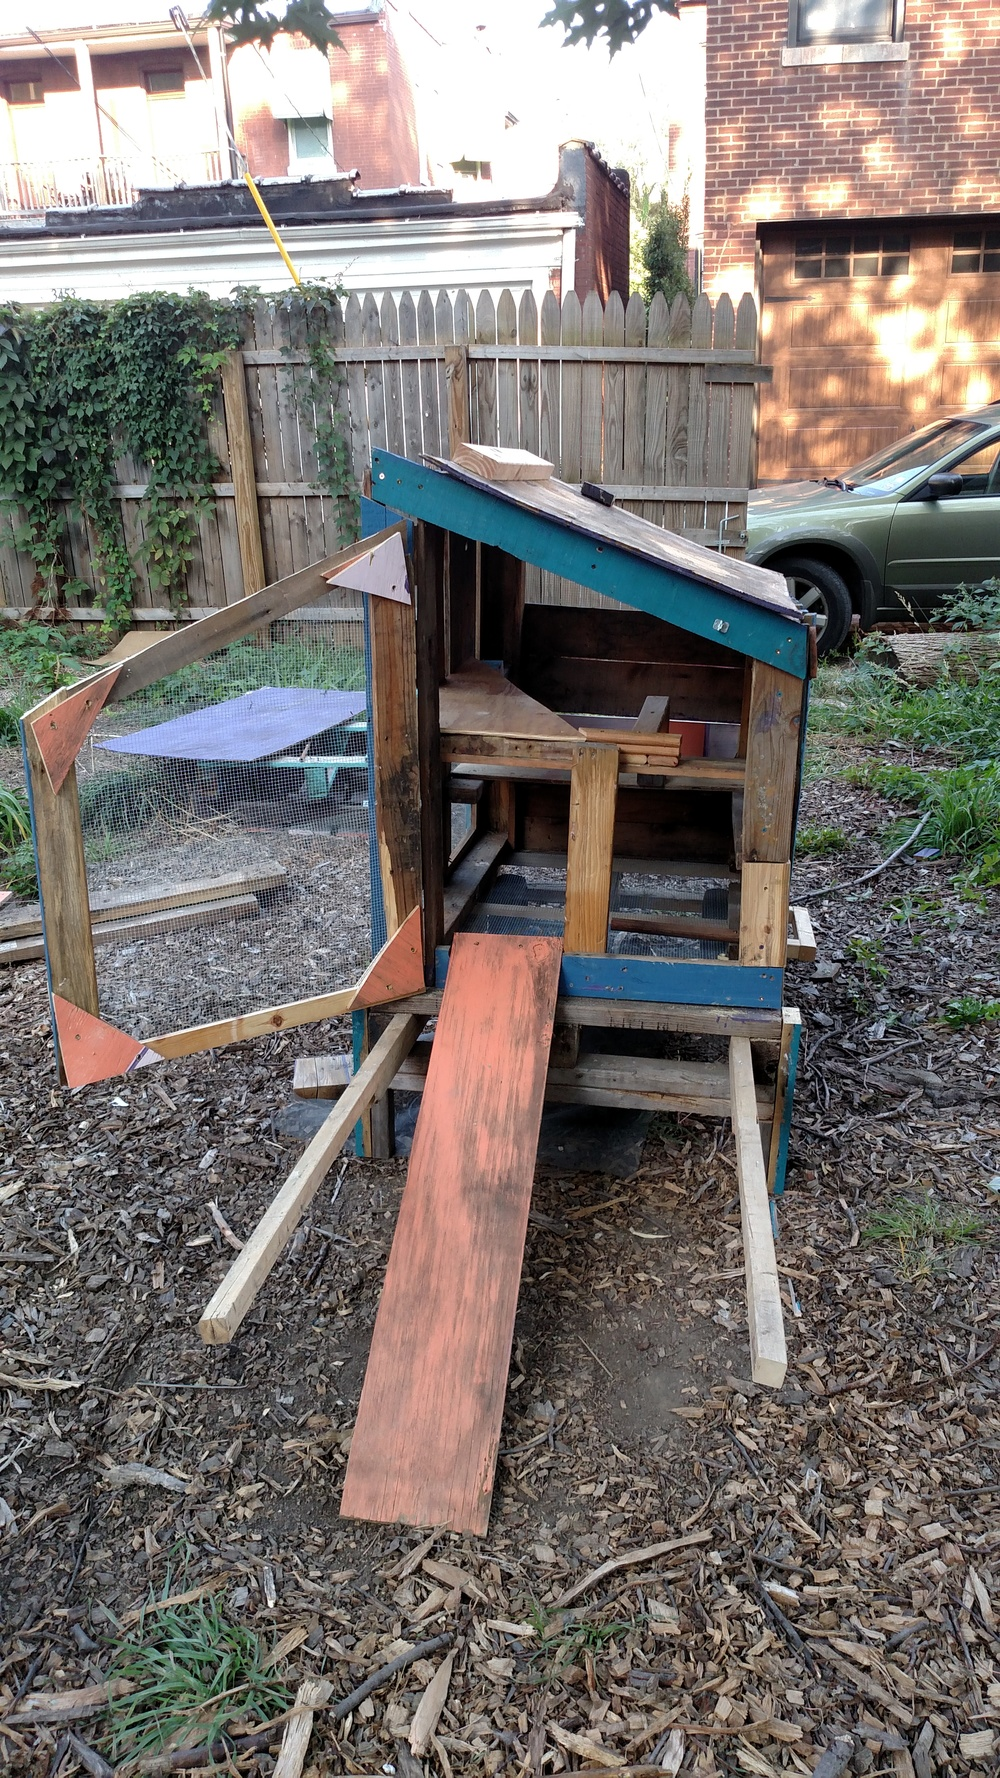 We repurposed a falling-apart chicken coop and built an all new home for the birds from the remnants of the old one, with an easy to move wheel system that allows the client freedom of the yard for the chickens.